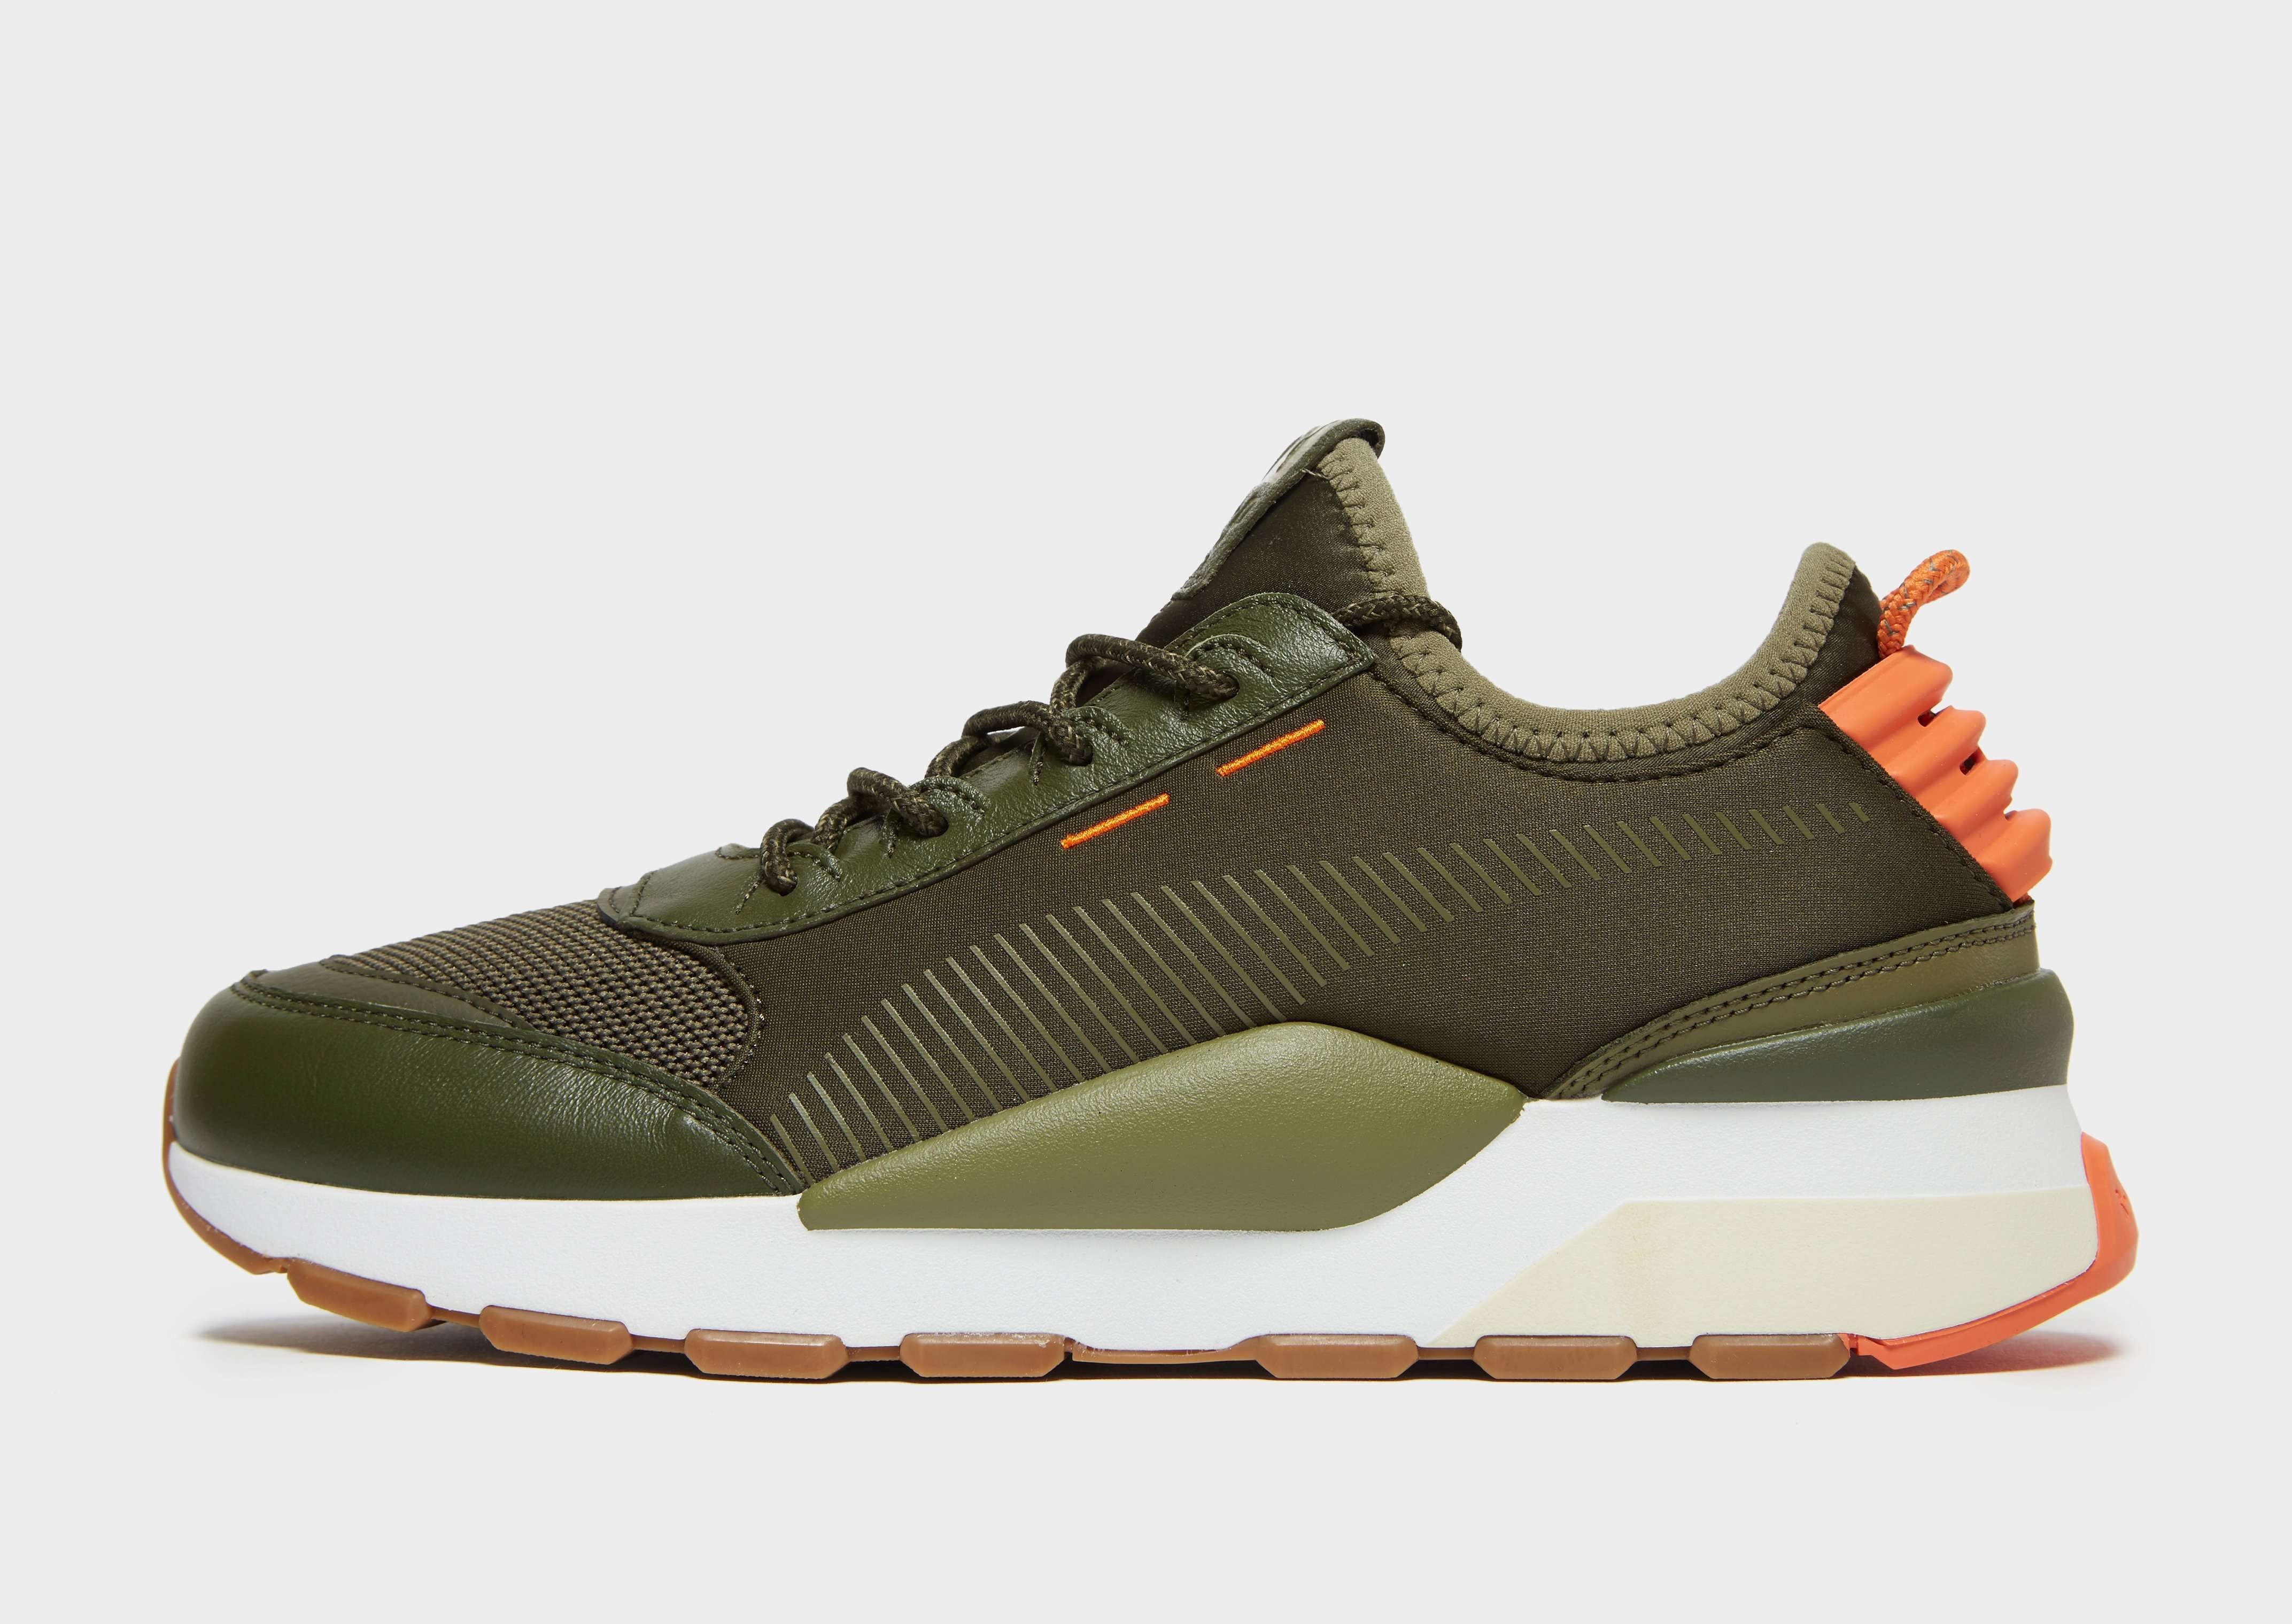 PUMA RS-0 - Shop online for PUMA RS-0 with JD Sports, the UK's leading  sports fashion retailer. | Retail fashion, Sneakers, Shoes